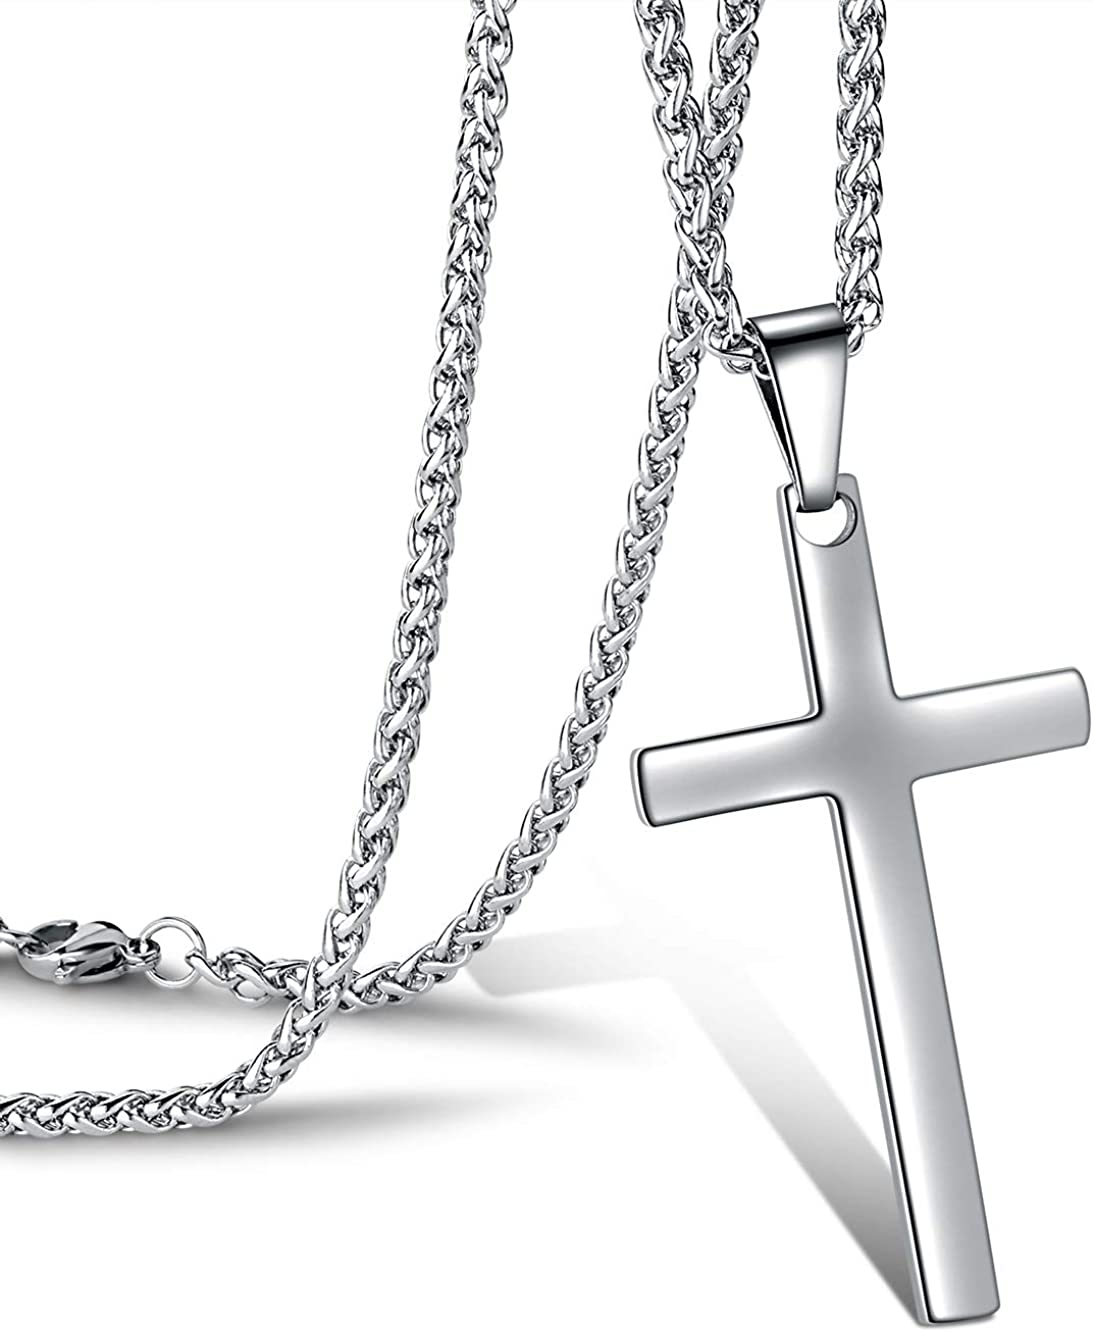 Jwelbuete Cross Pendant Necklace for Men Stainless Steel Titanium Necklace,18-36 Inches